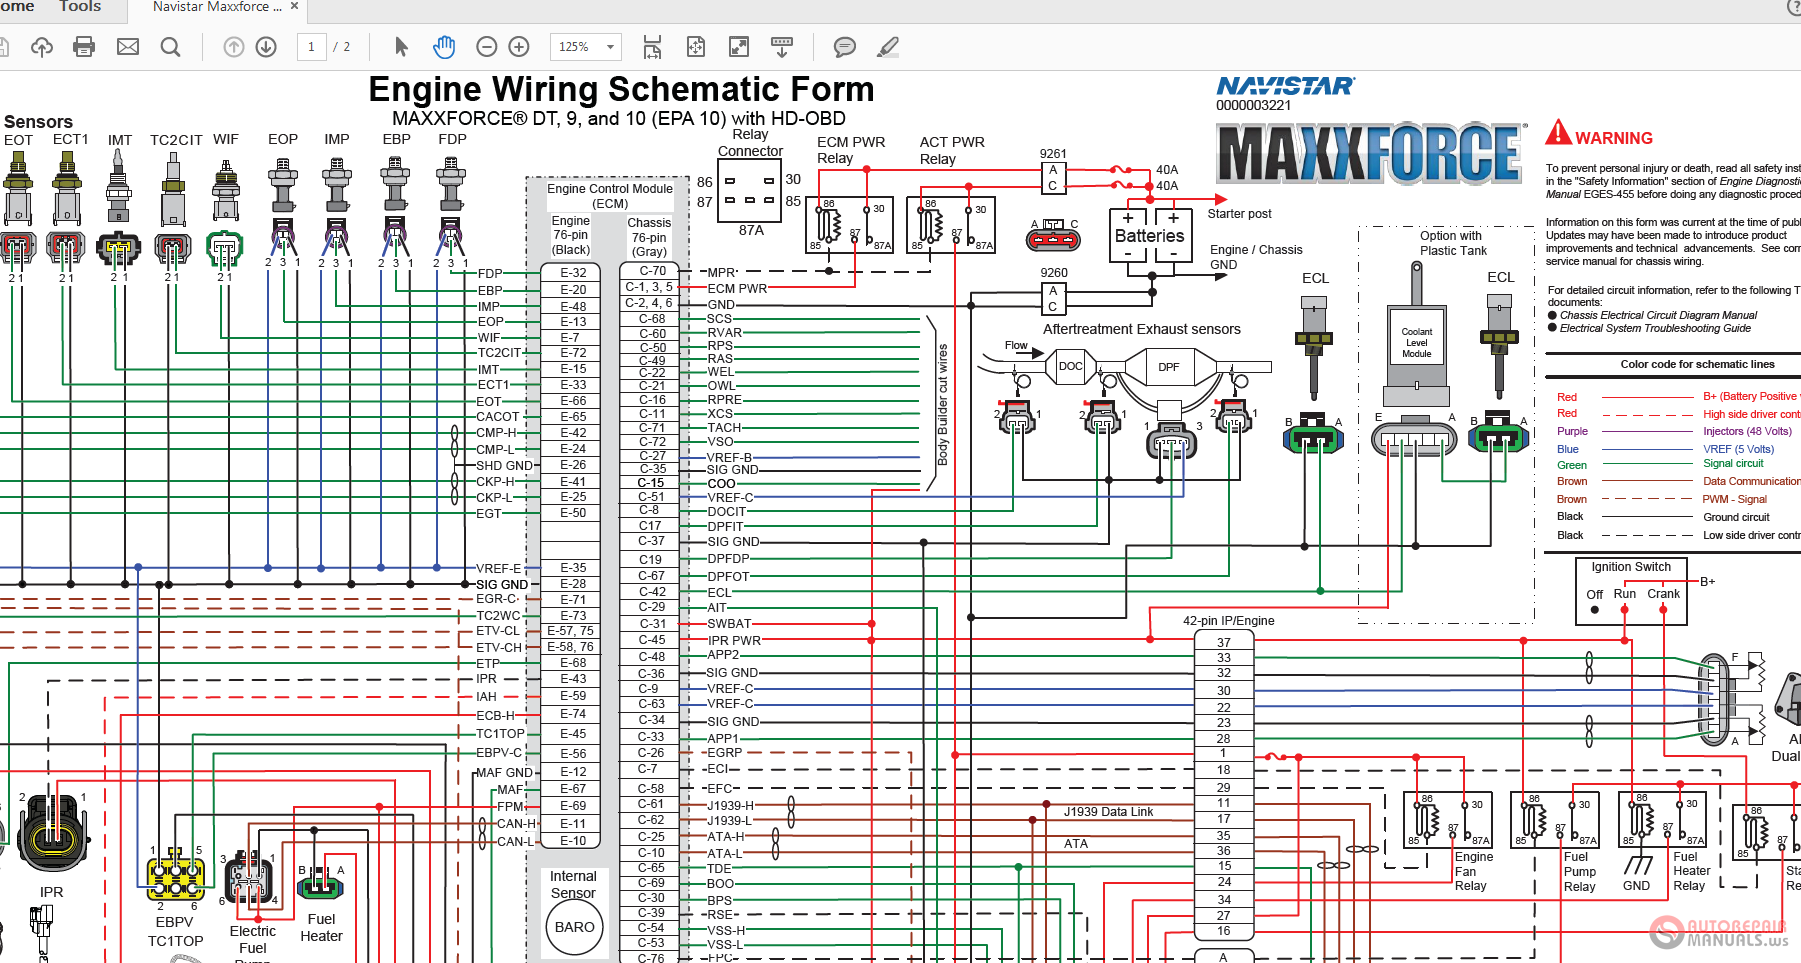 2012 international maxxforce dt wiring diagram navistar maxxforce dt 9 10 hd obd 2013 wiring diagrams